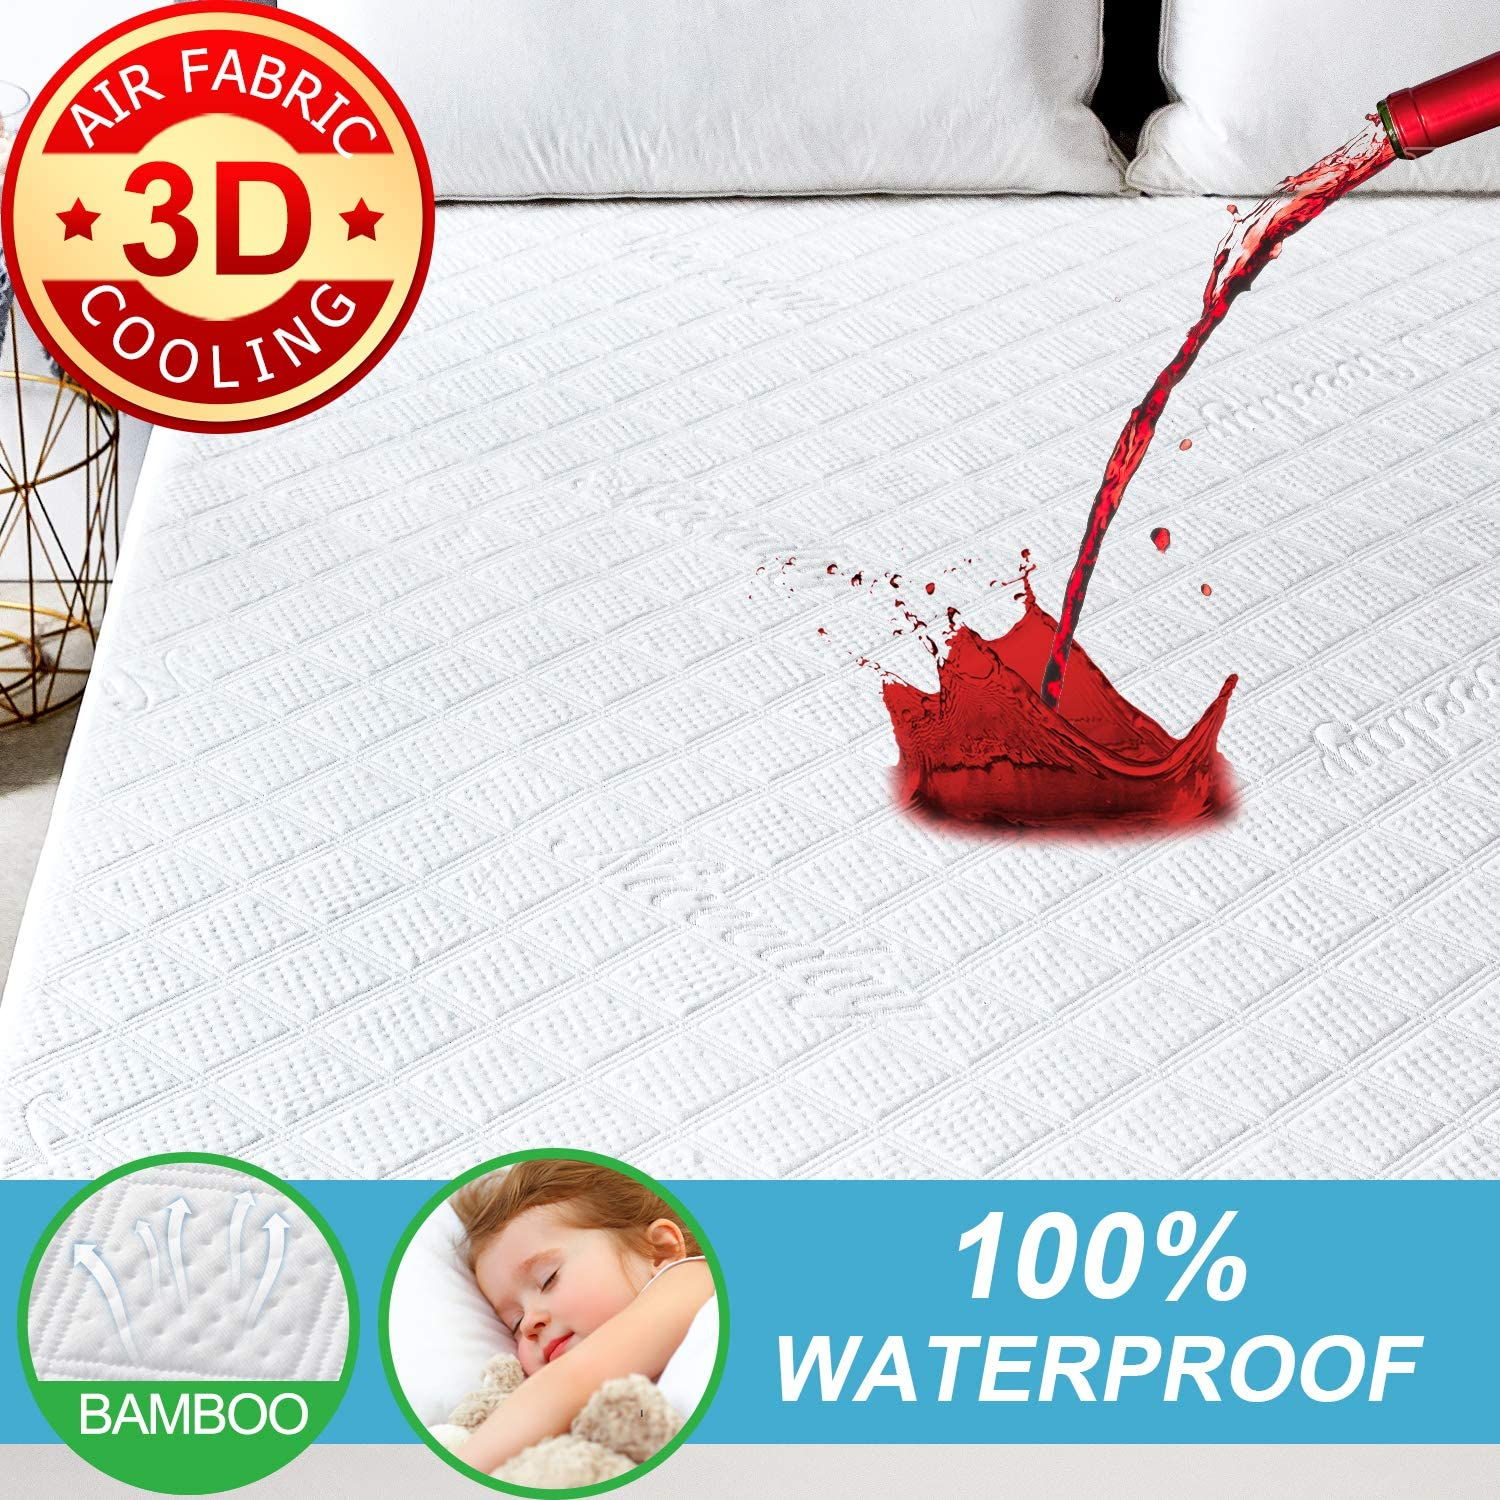 Organic Mattress Protector Queen, Cooling Bamboo Waterproof Mattress Protector -Ultra Soft 3D Air Fabric Mattress Pad Cover Hypoallergenic Waterproof Sheets - Noiseless Mattress Protector Vinyl Free